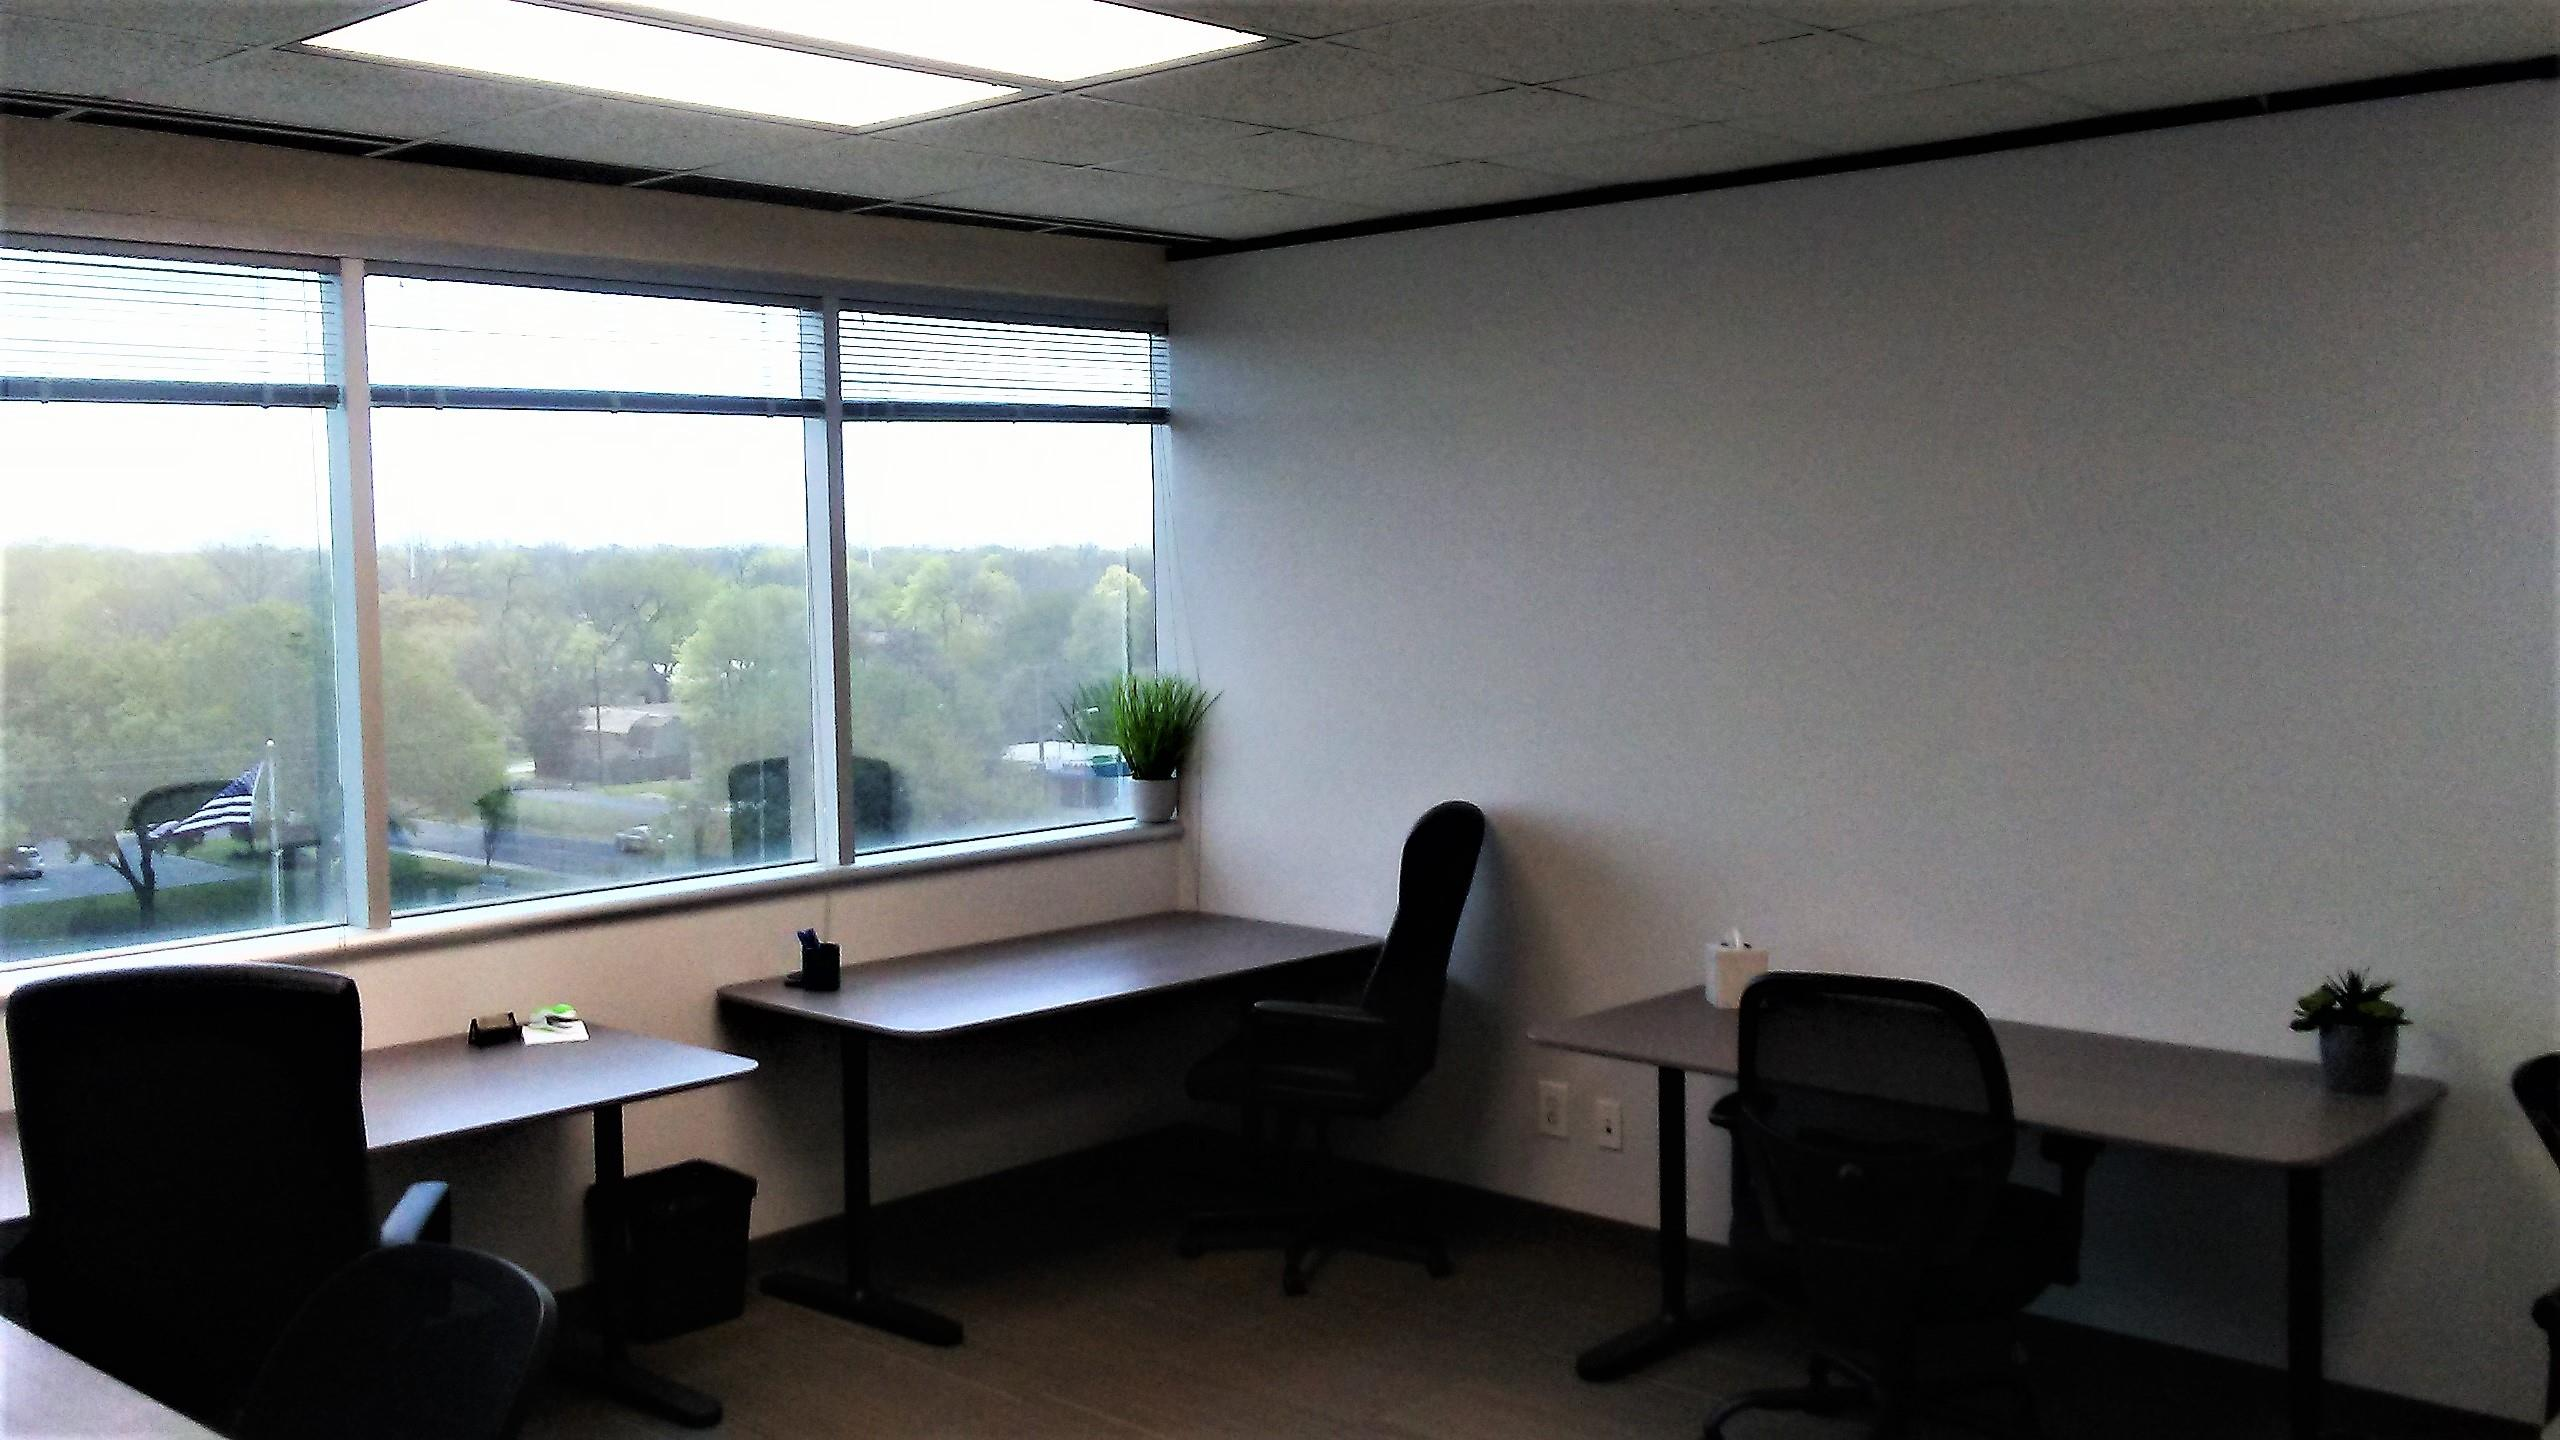 Northcross Chase Bank - Office Space for 7